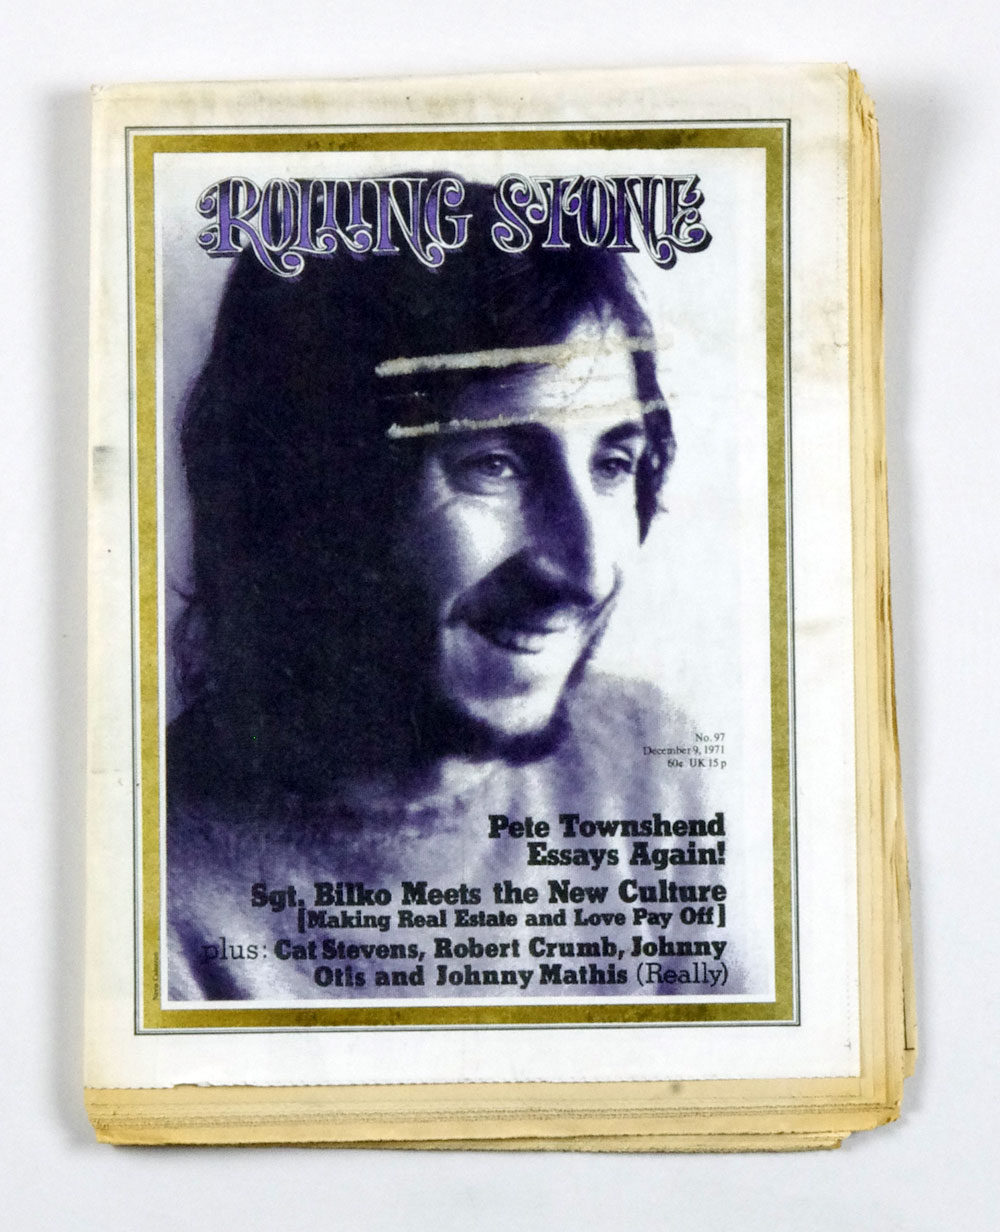 Rolling Stone Magazine 1971 Dec 9 No.97 Peter Townsend The WHO